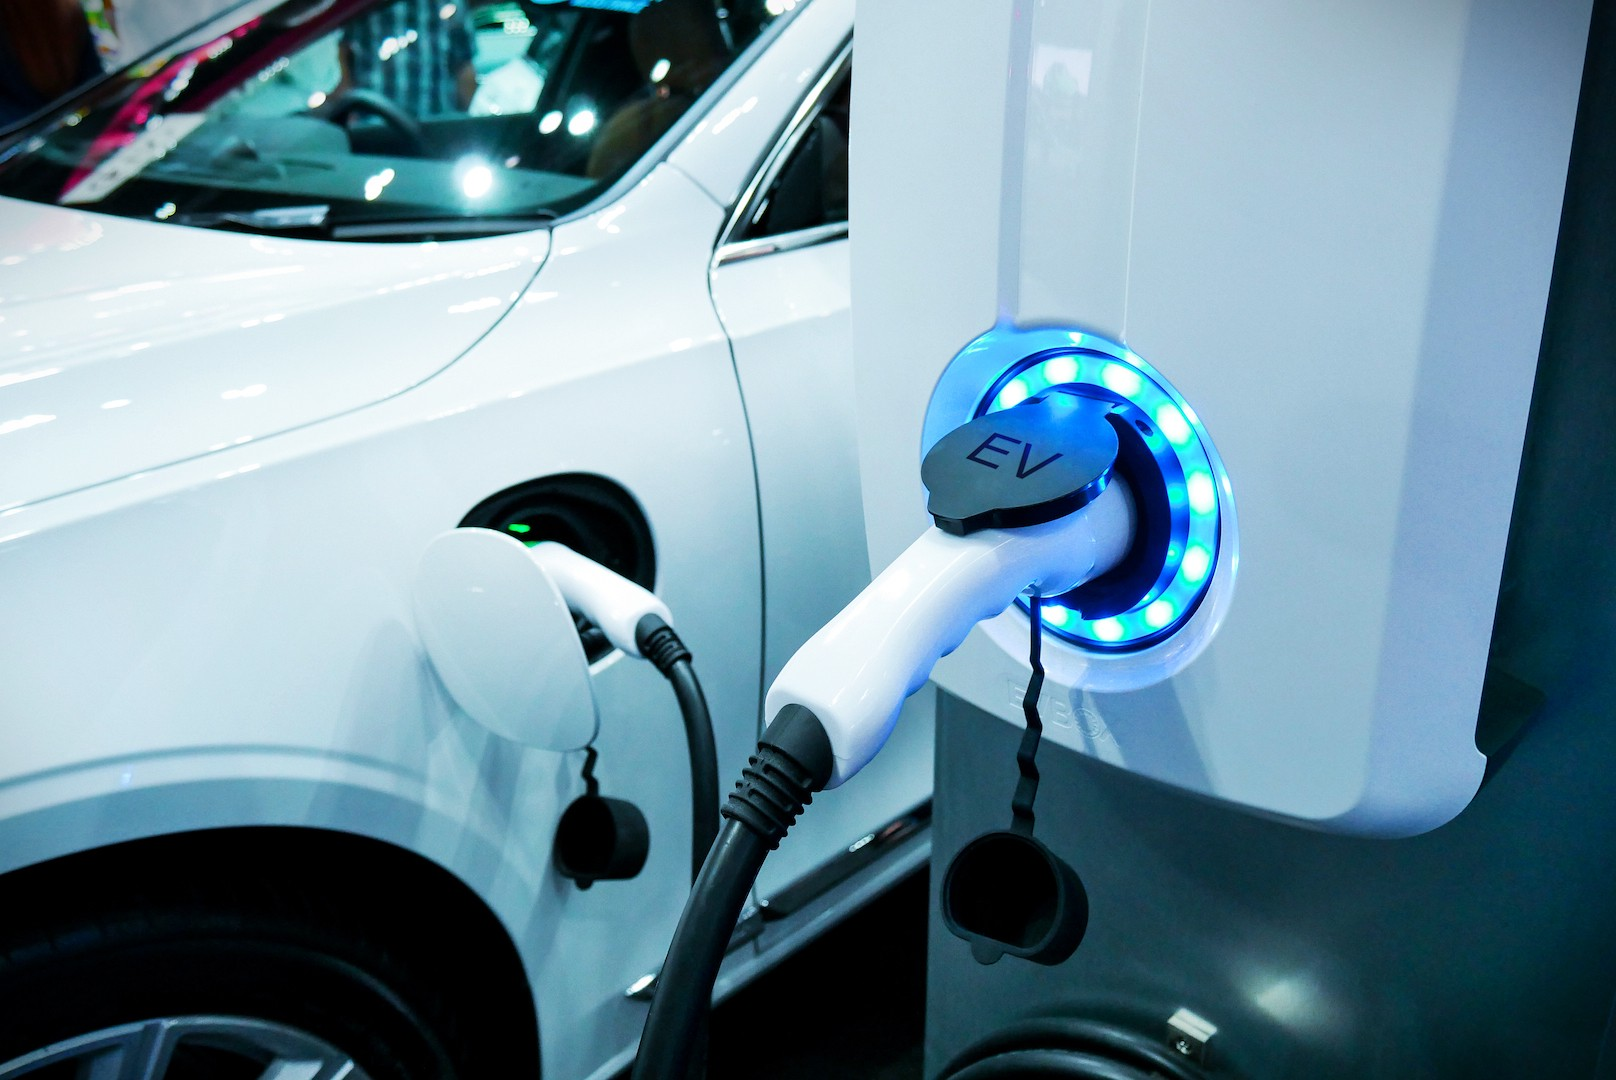 Will COVID Drive an Early Peak in Transportation Activity and Oil Demand?